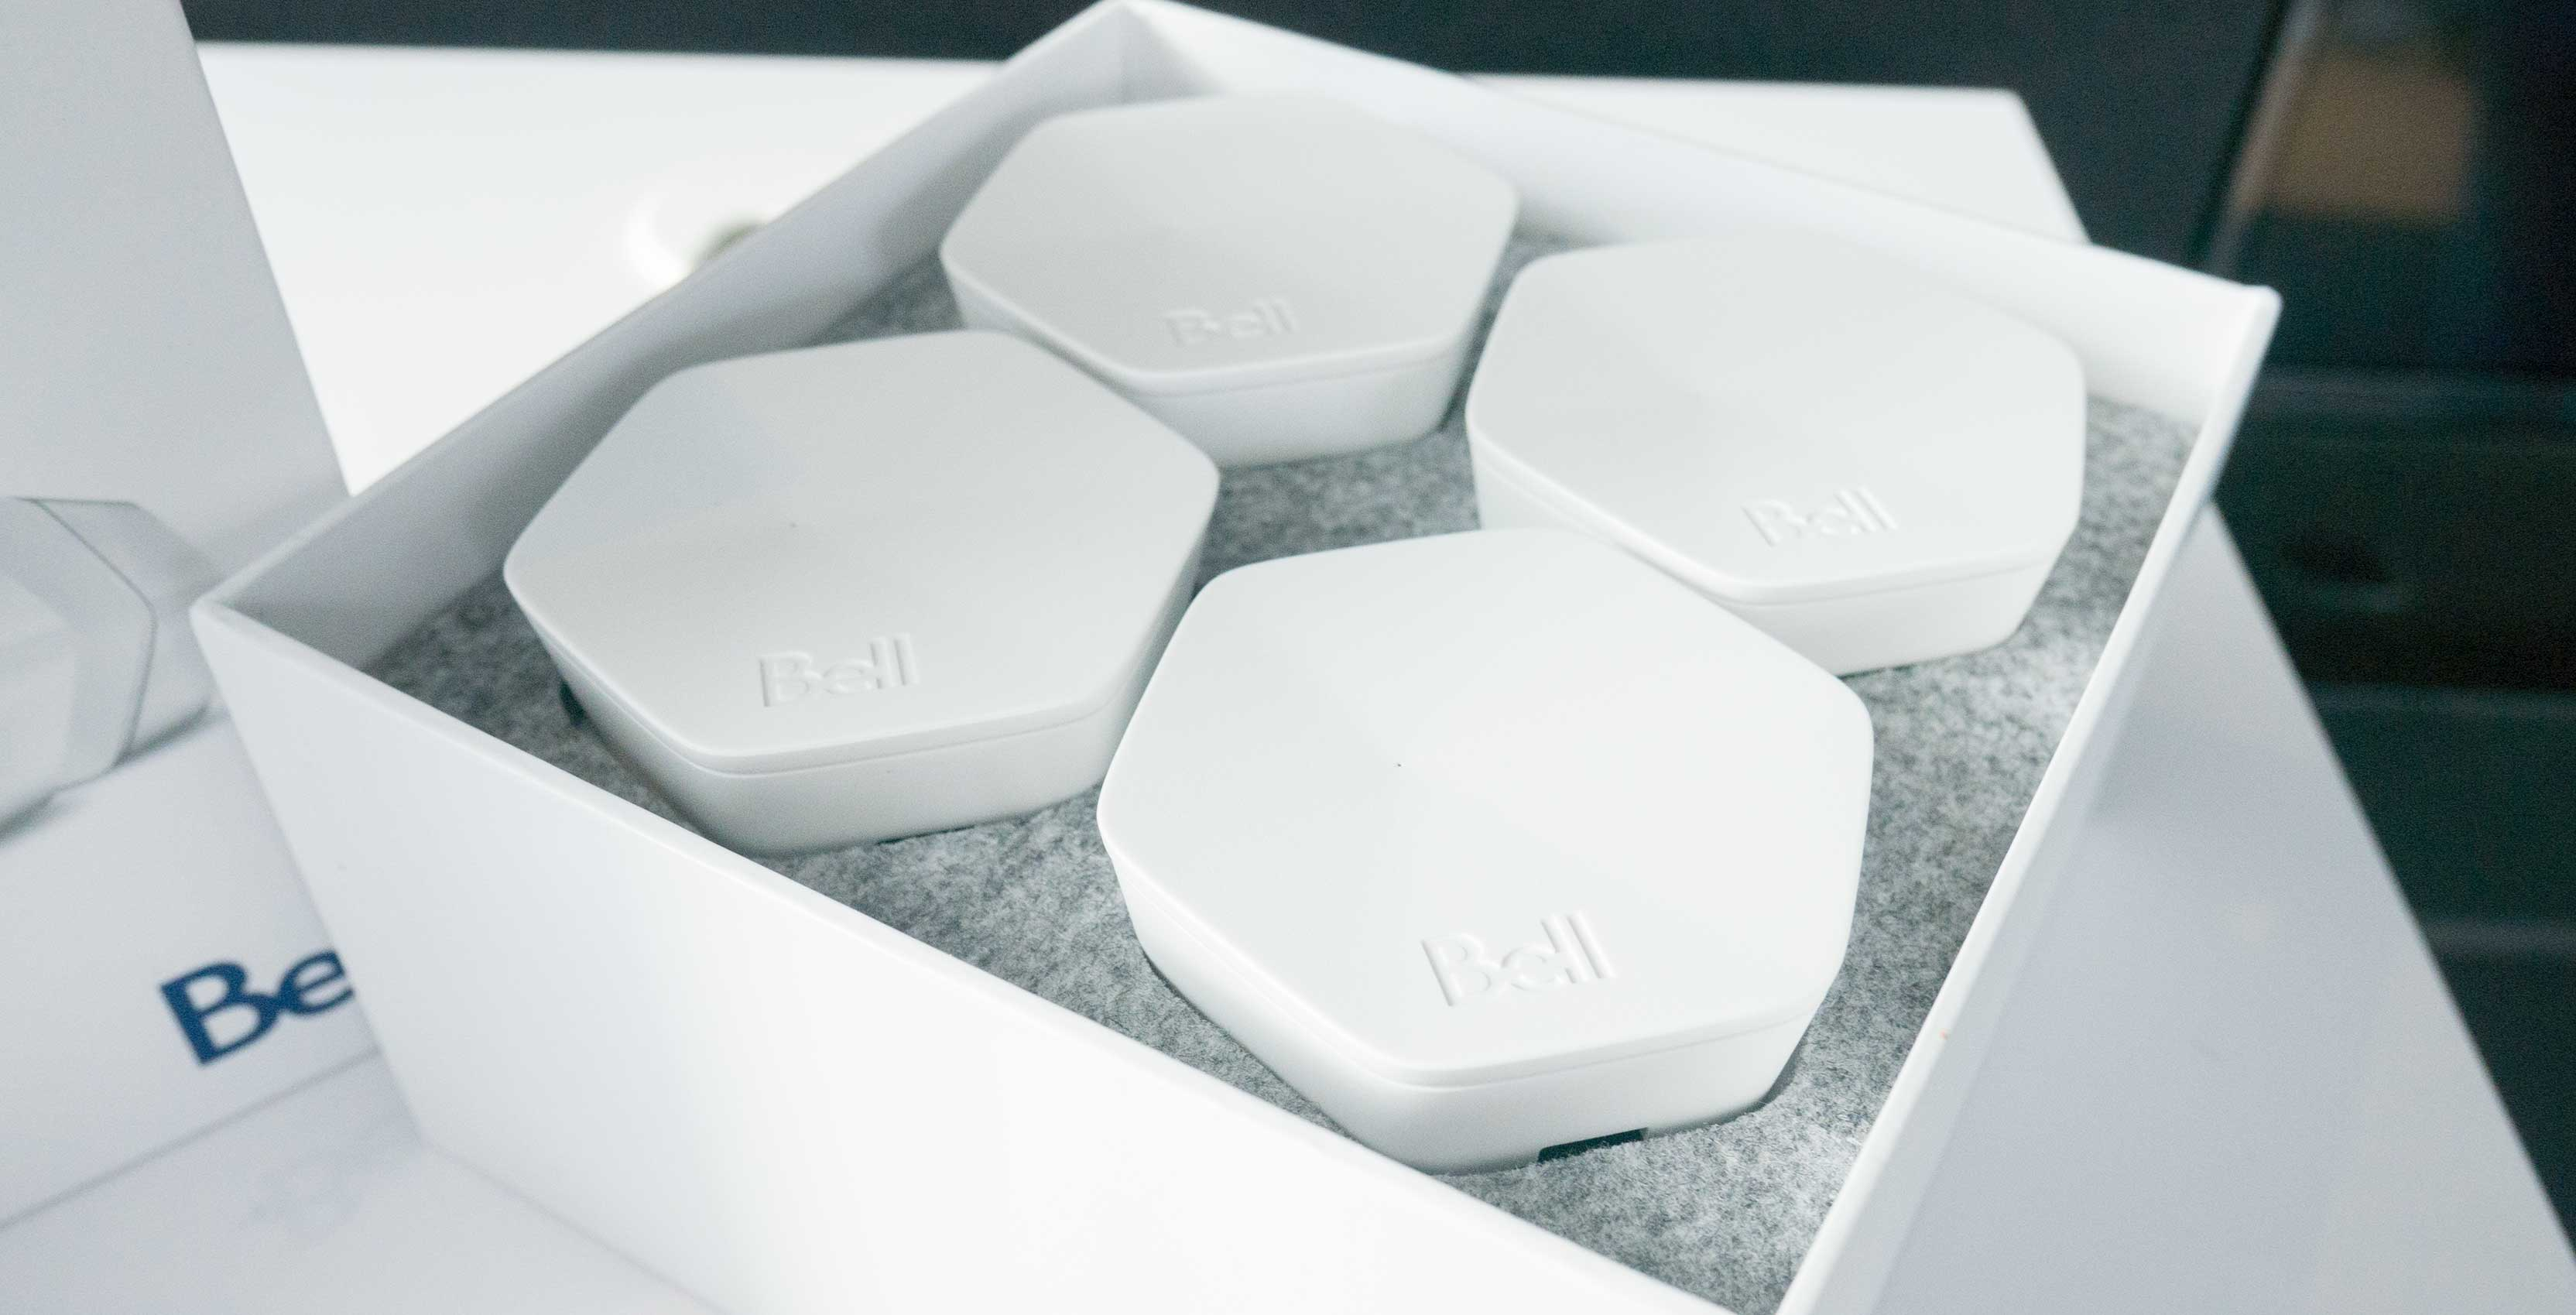 Bell launches Whole Home Wi Fi mesh network set for $5 monthly fee